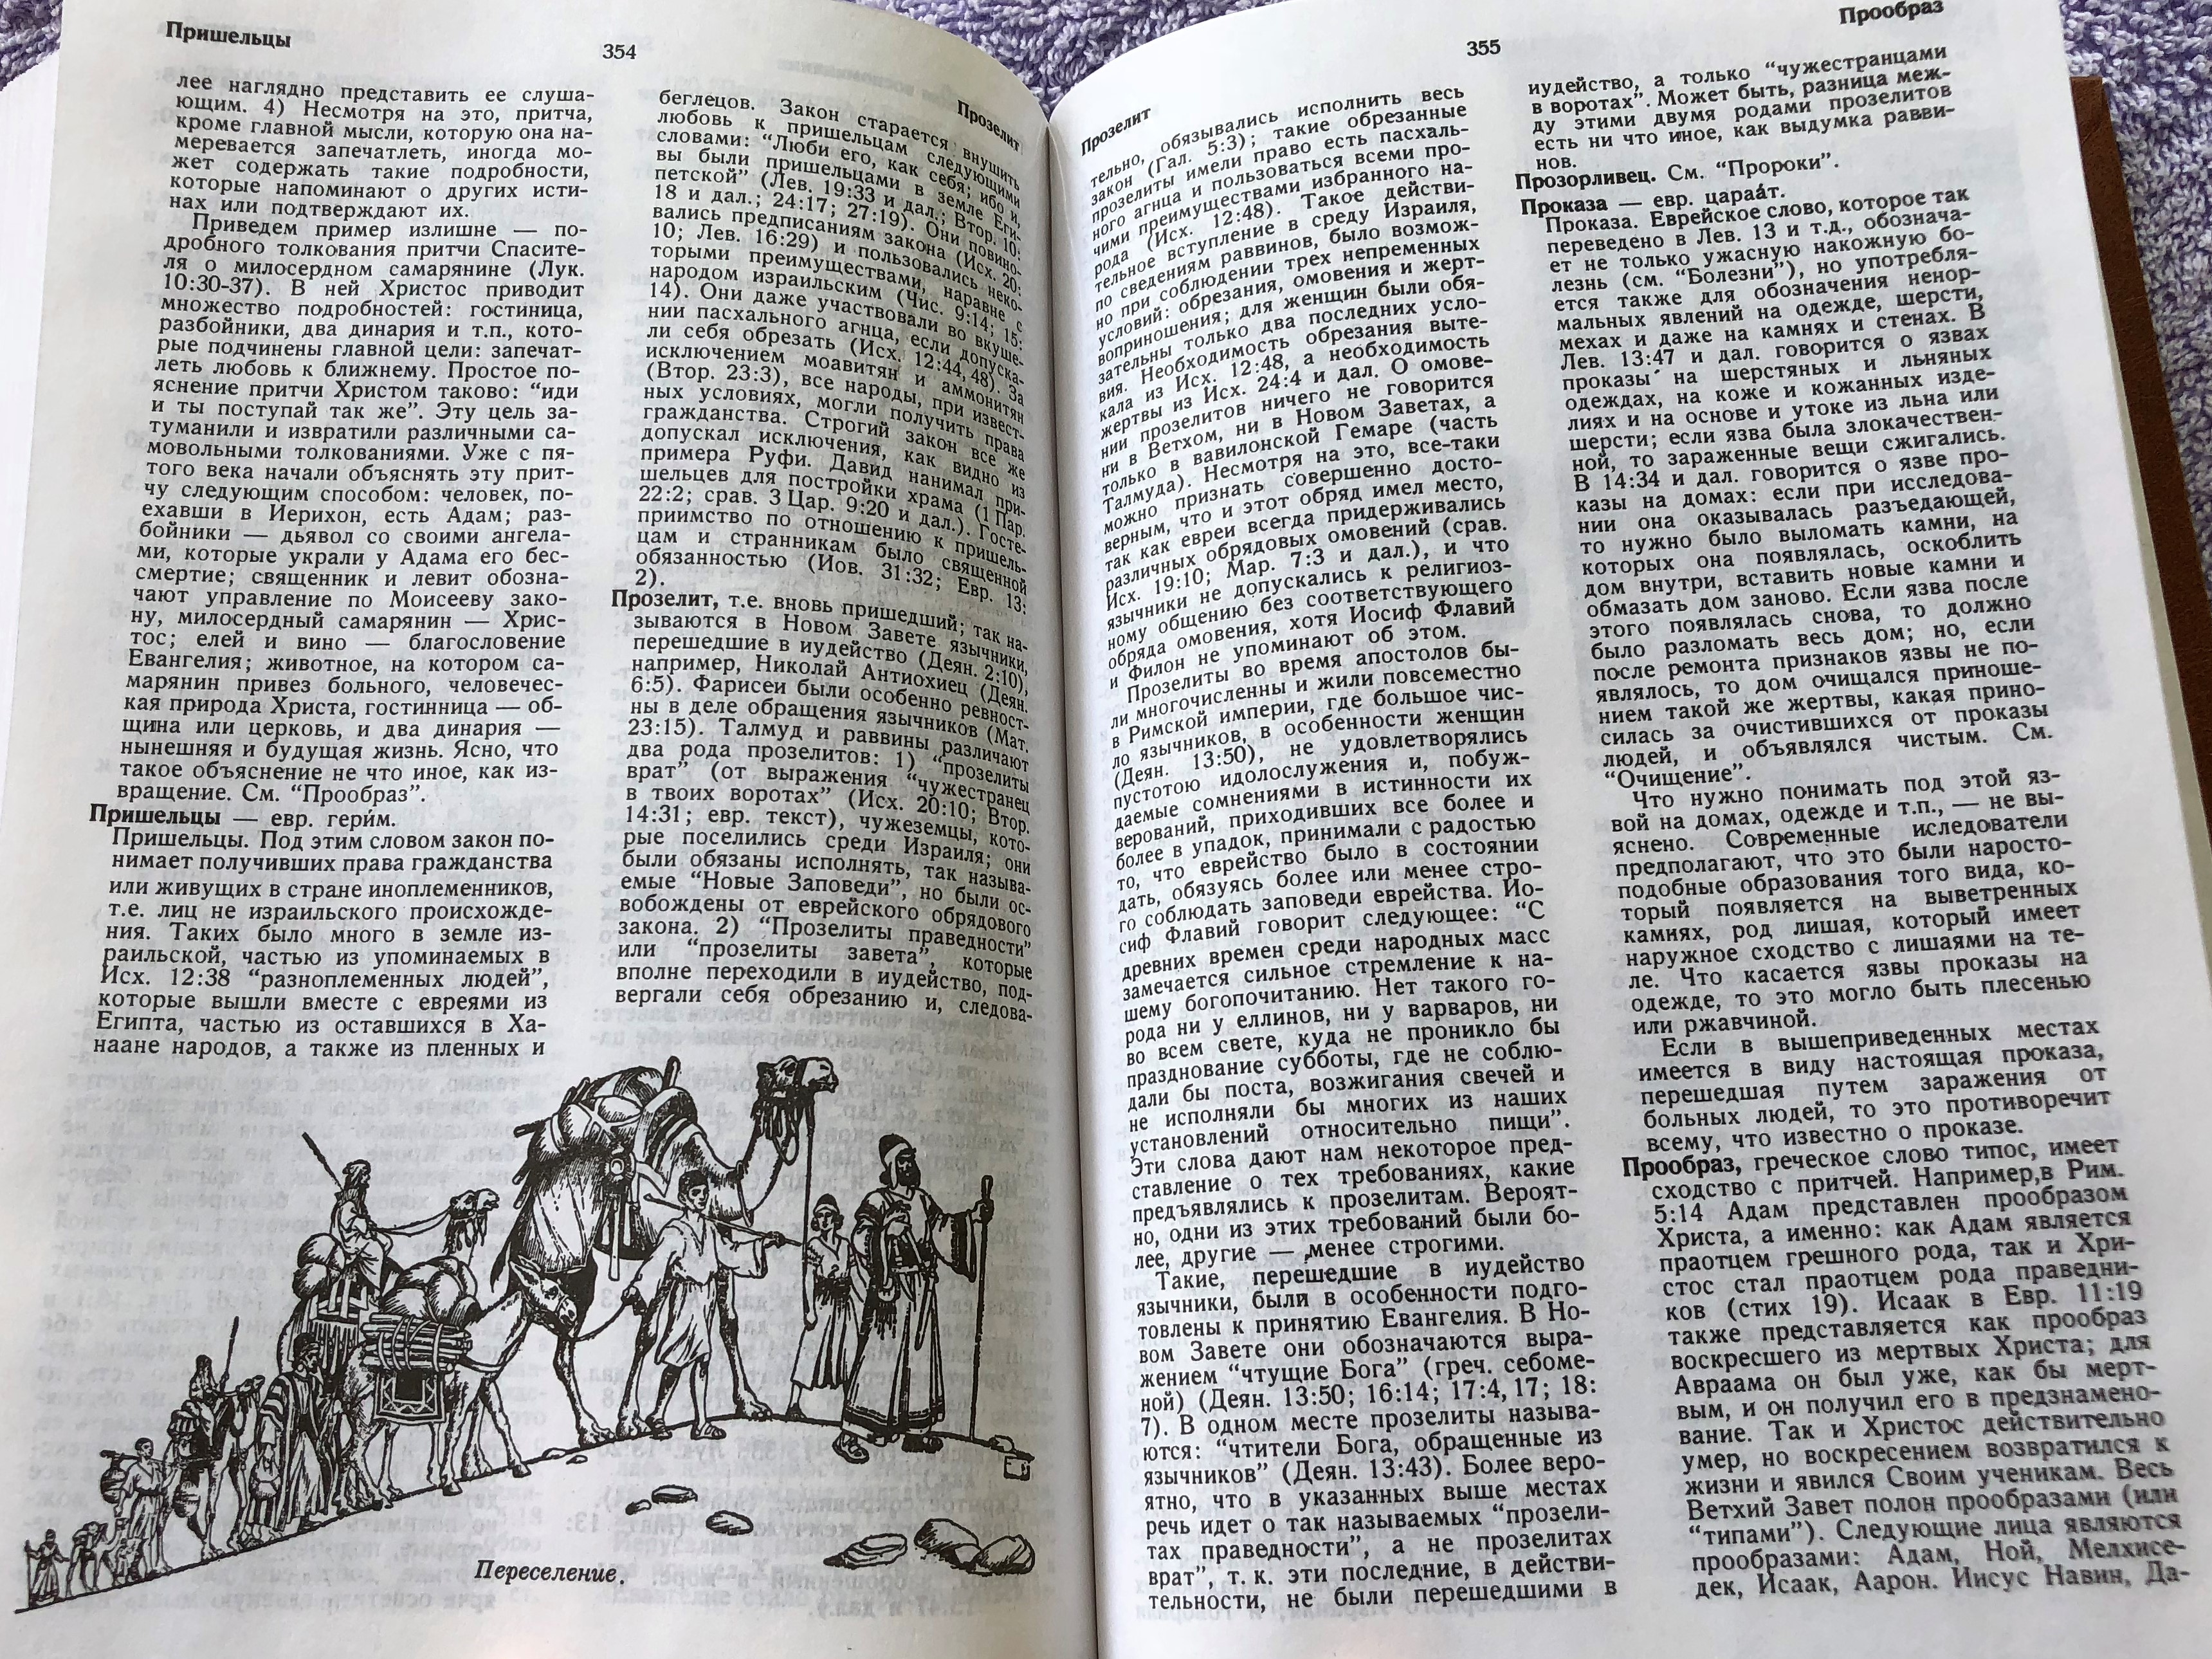 russian-bible-dictionary-encyclopedic-dictionary-in-russian-compiled-by-eric-nustrem-12-.jpg